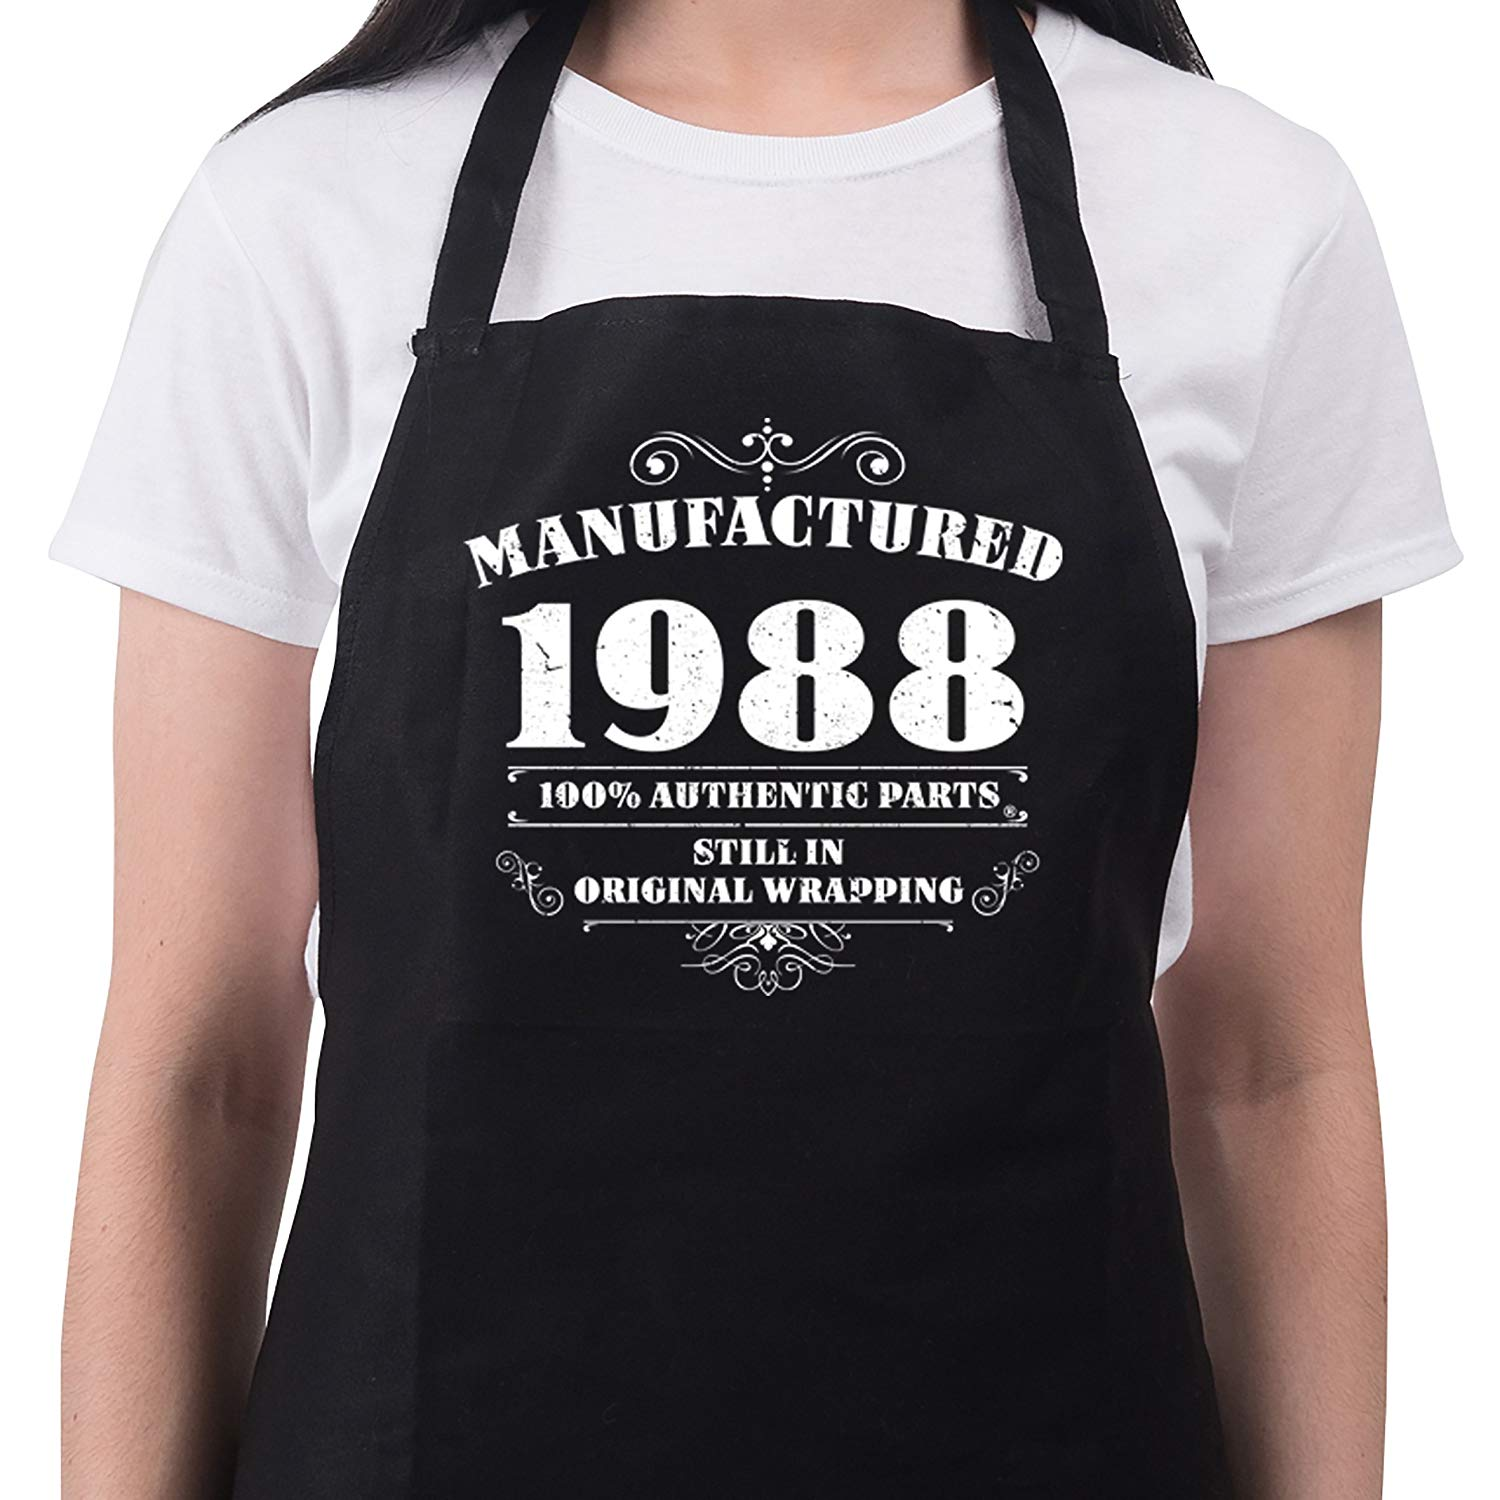 Women's 30th Birthday Gift Apron Manufactured 1988 Aprons 30th Birthday Gifts